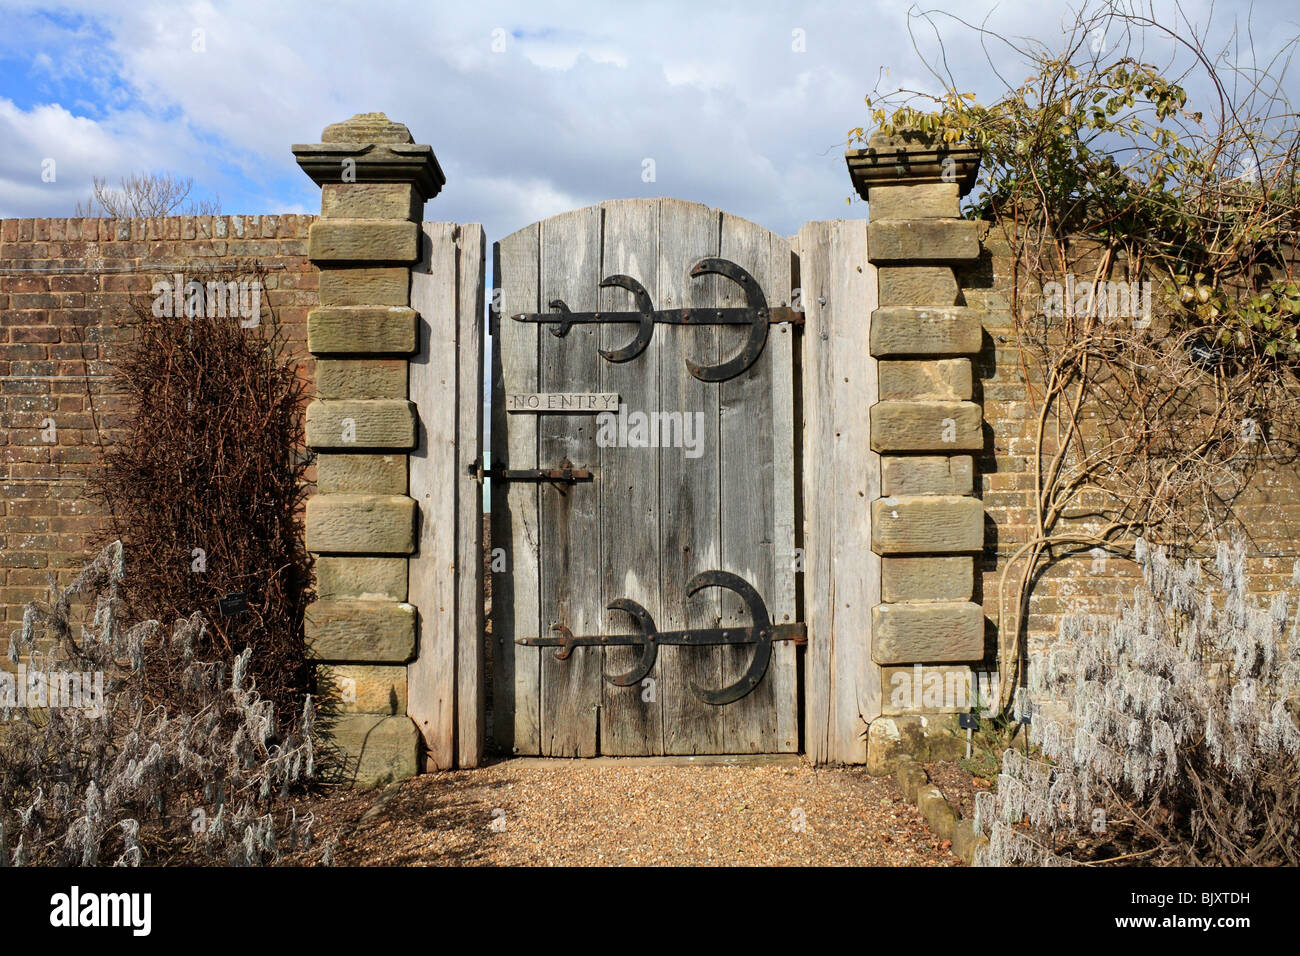 Sturdy Old Wooden Garden Gate With No Entry Sign And Large Brass Hinges,  Sussex England